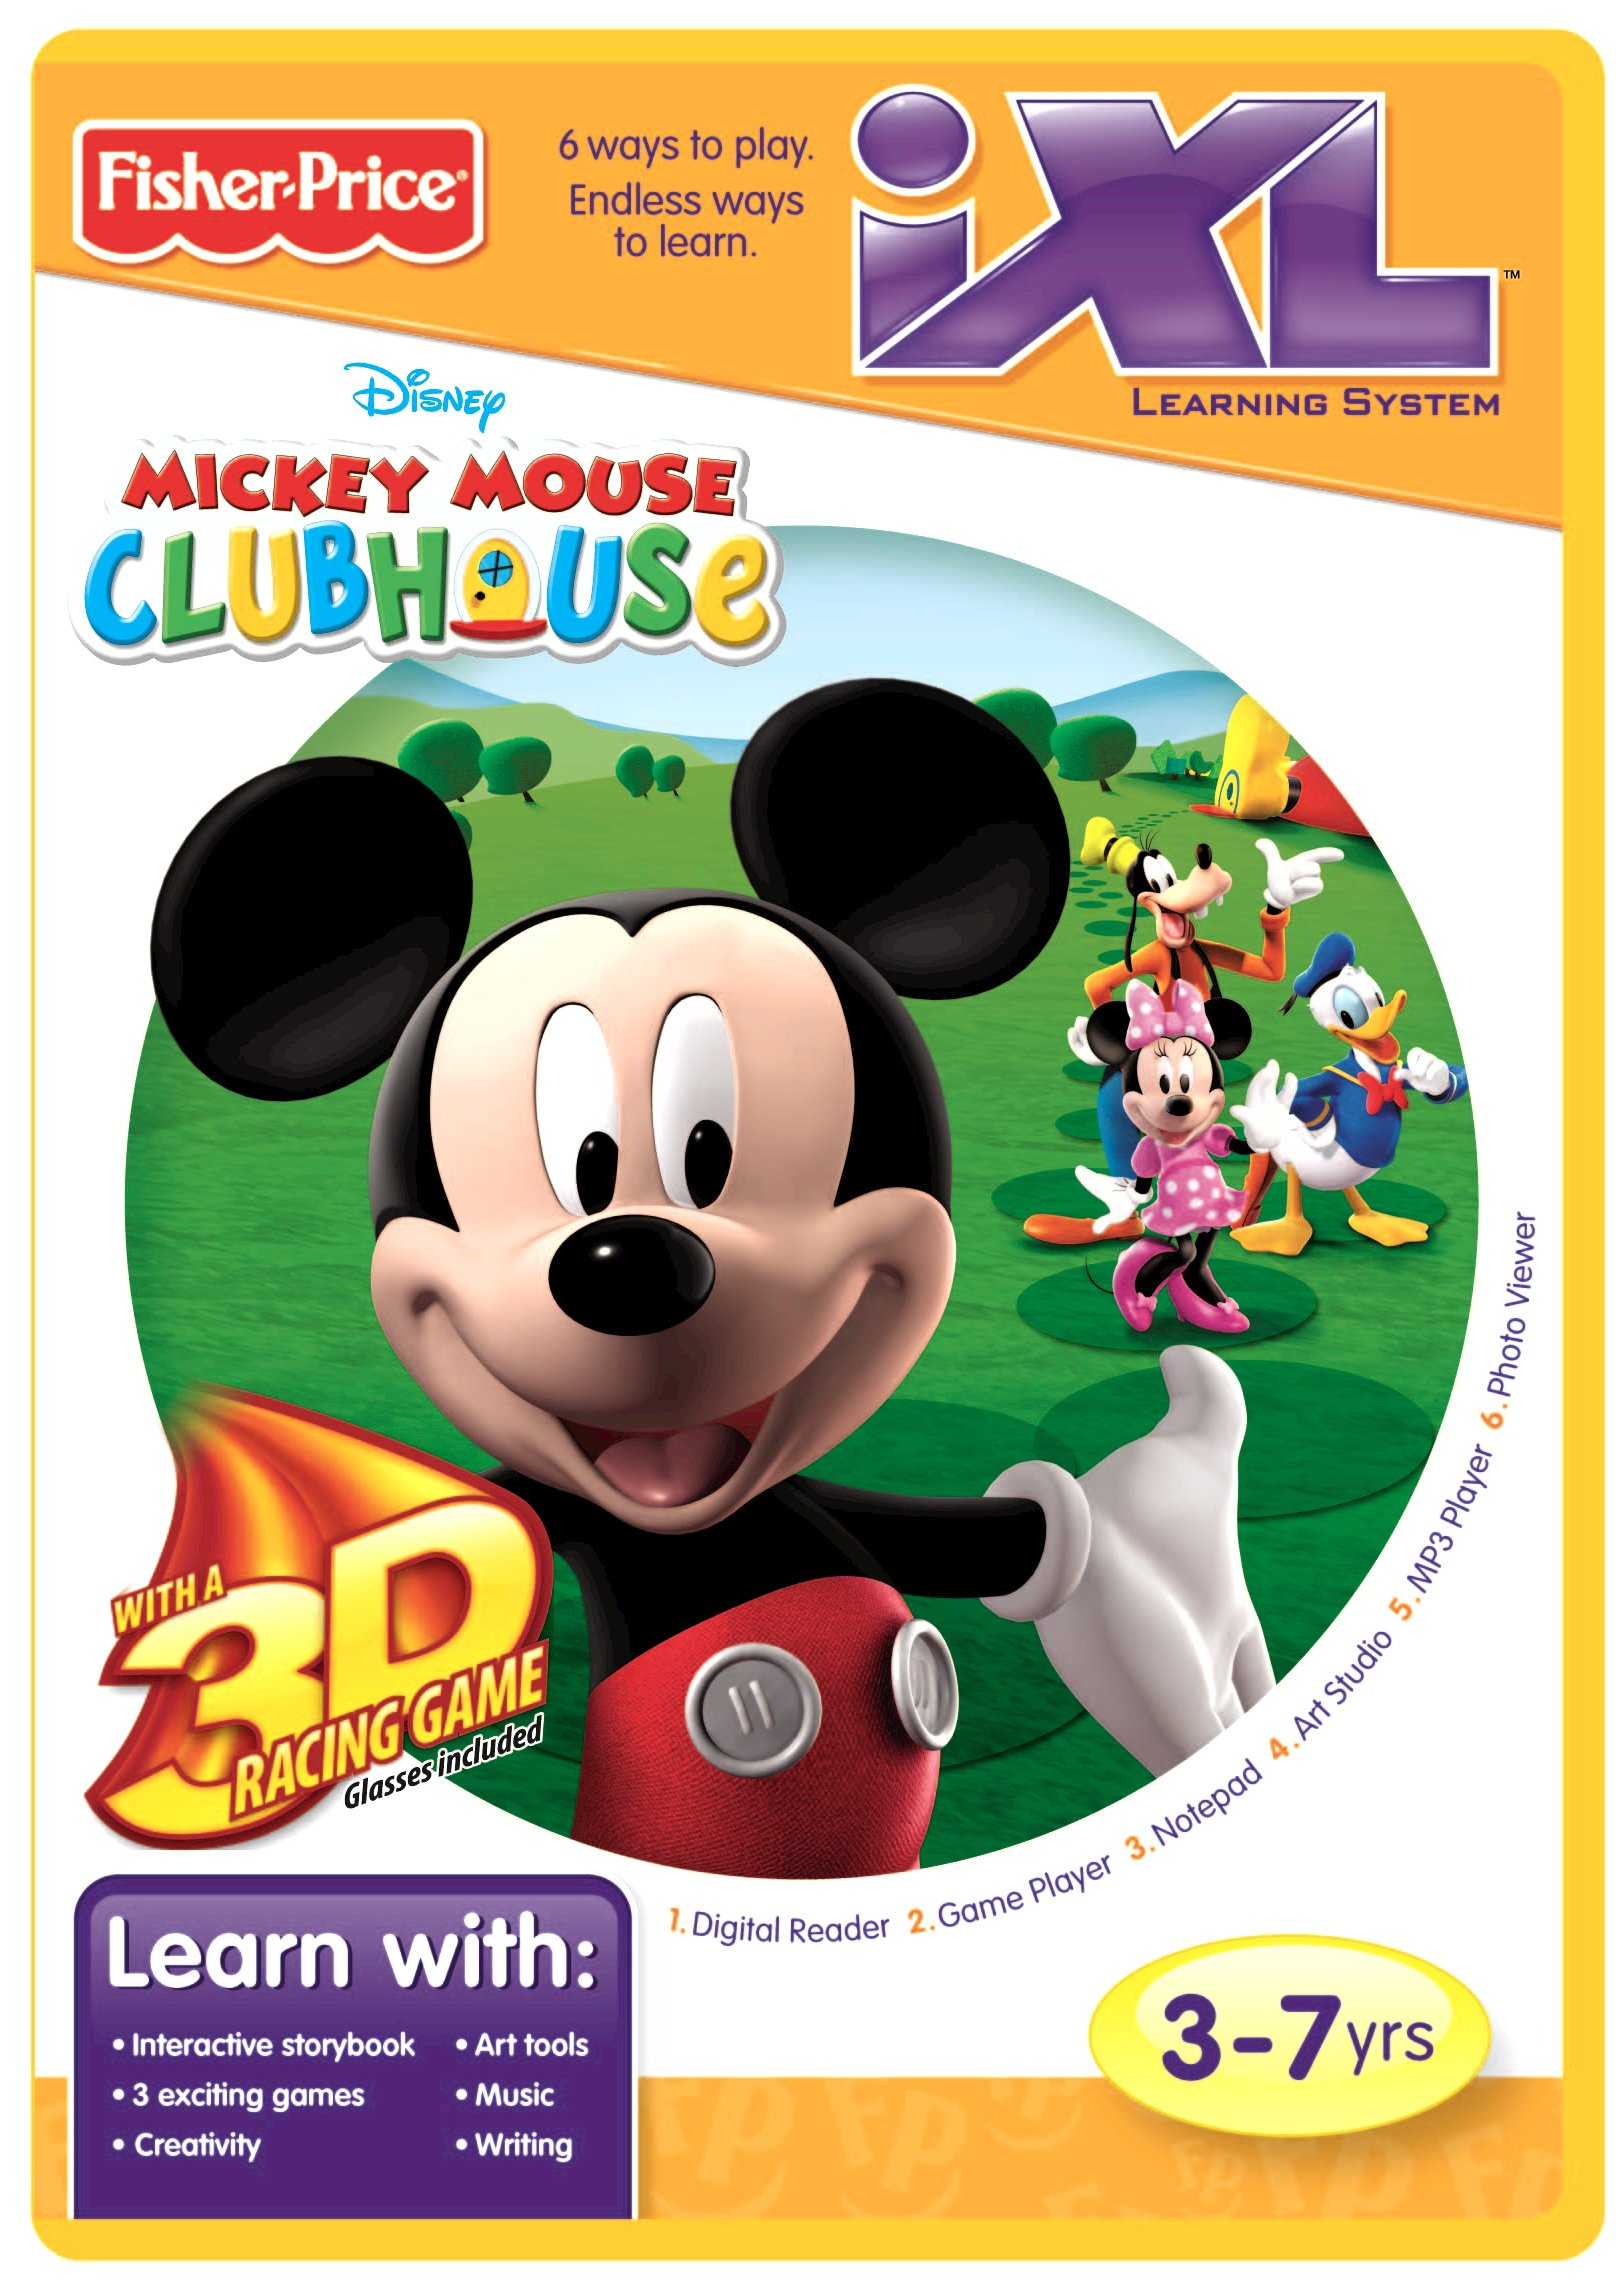 Fisher-Price iXL Learning System Software Mickey's Clubhouse 3D